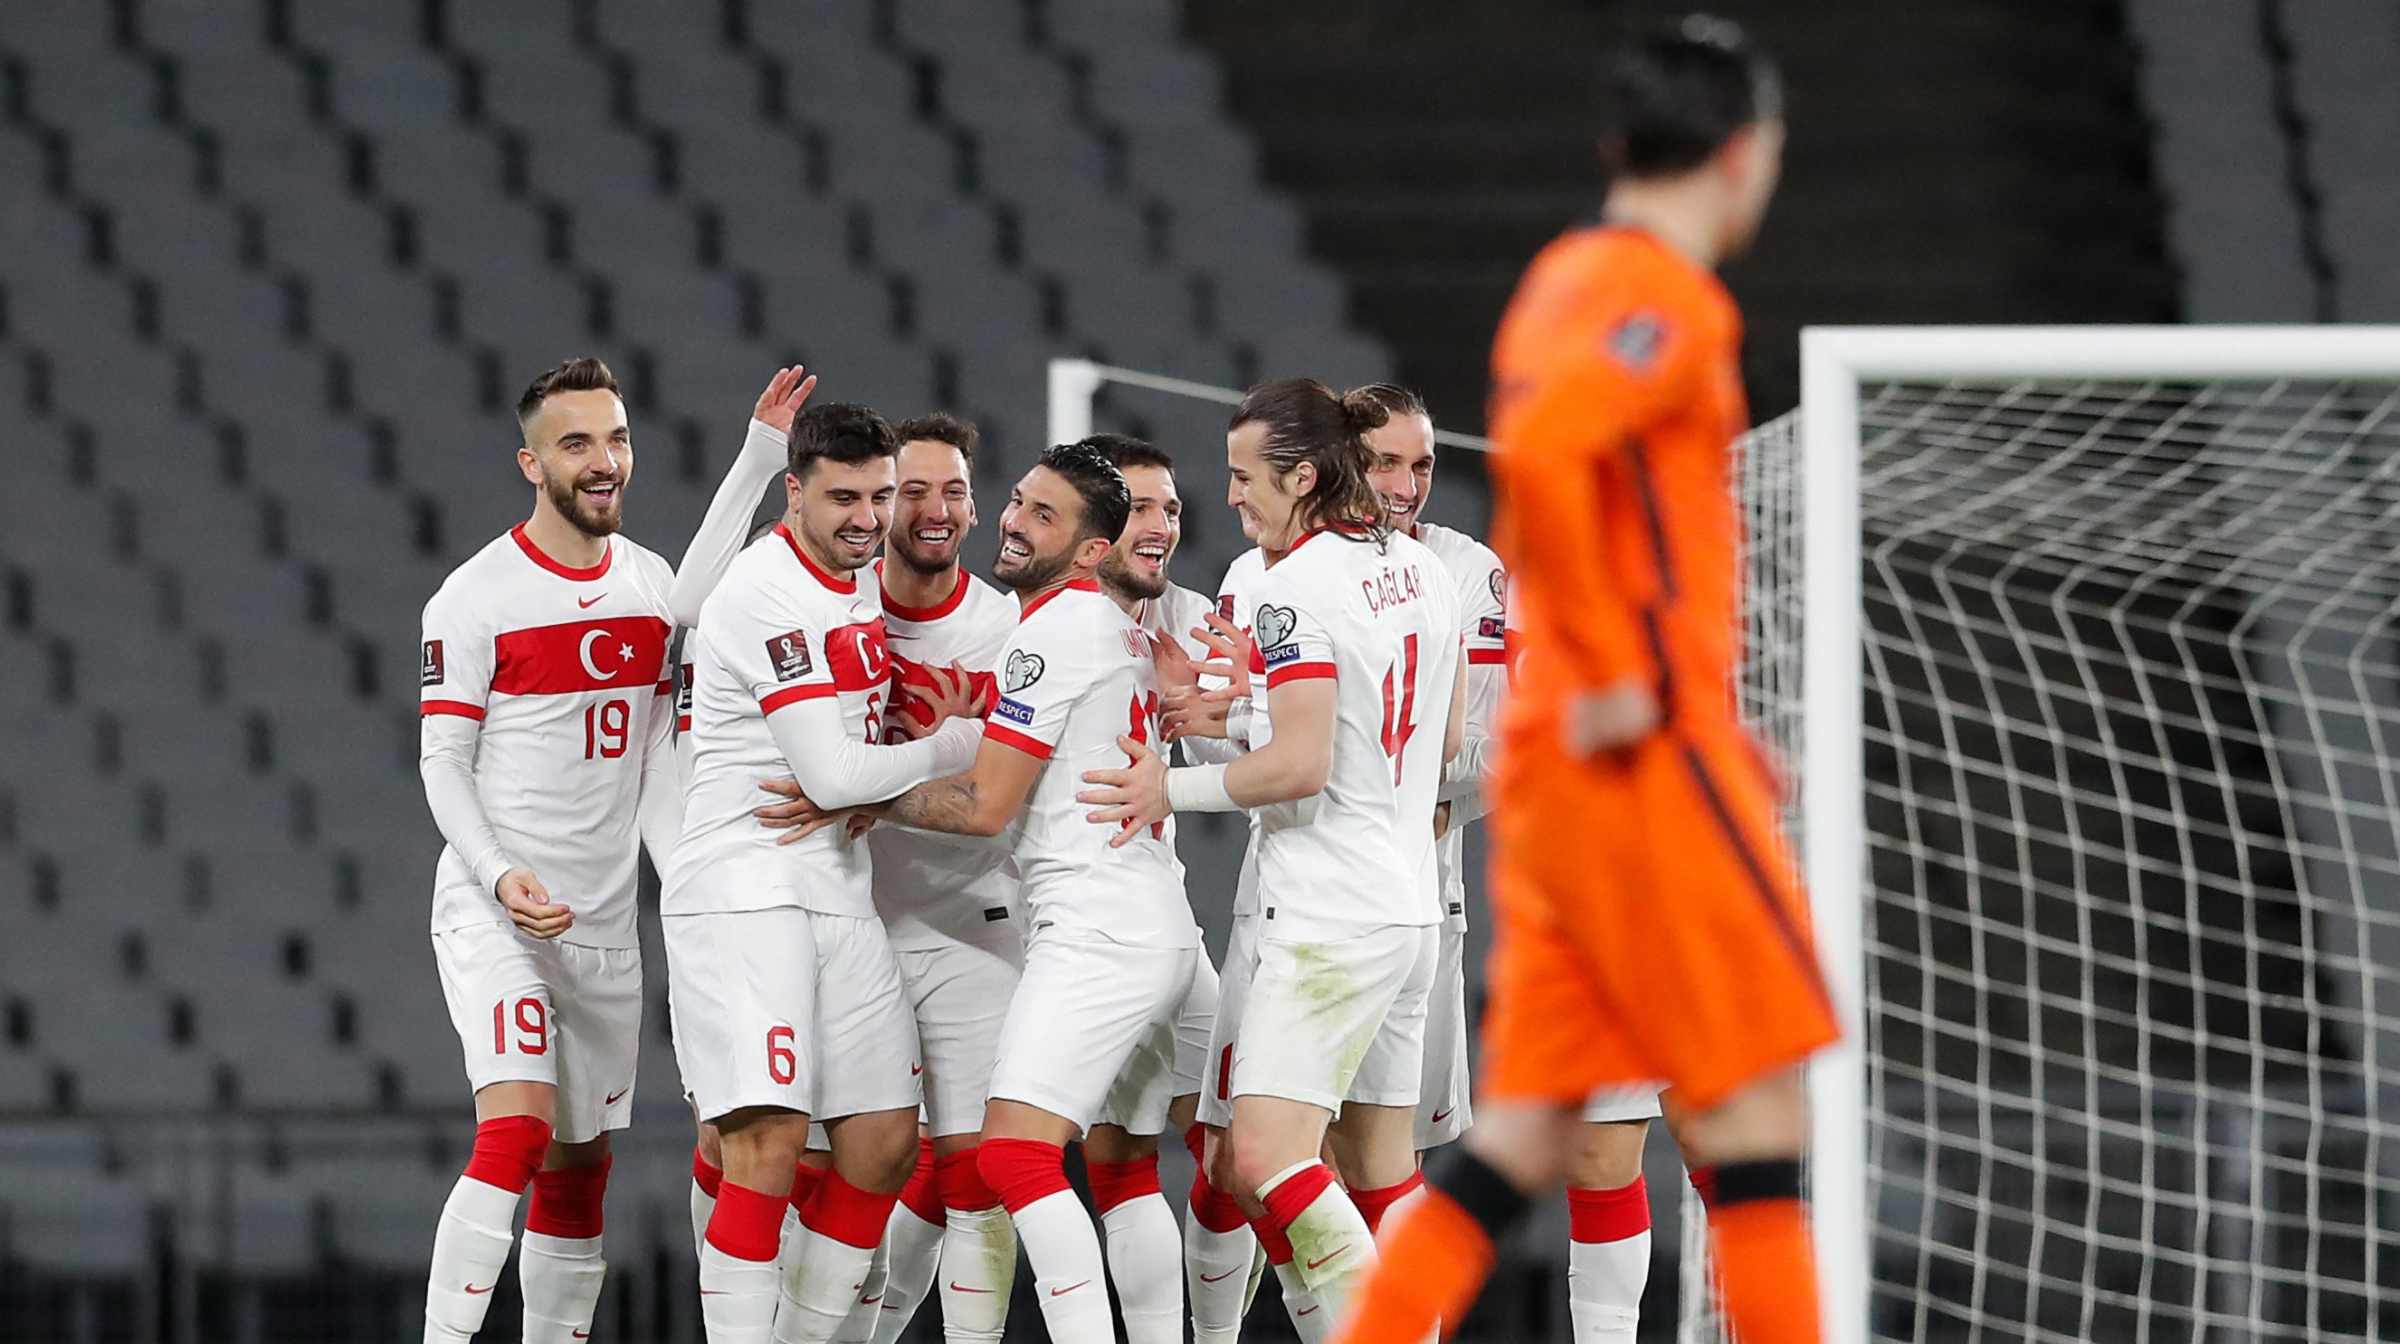 Turkey's players celebrate after scoring their teams's third goal during the FIFA World Cup Qatar 2022 qualification Group G football match between Turkey and The Netherlands at the Ataturk Olympic Stadium, in Istanbul, on March 24, 2021.